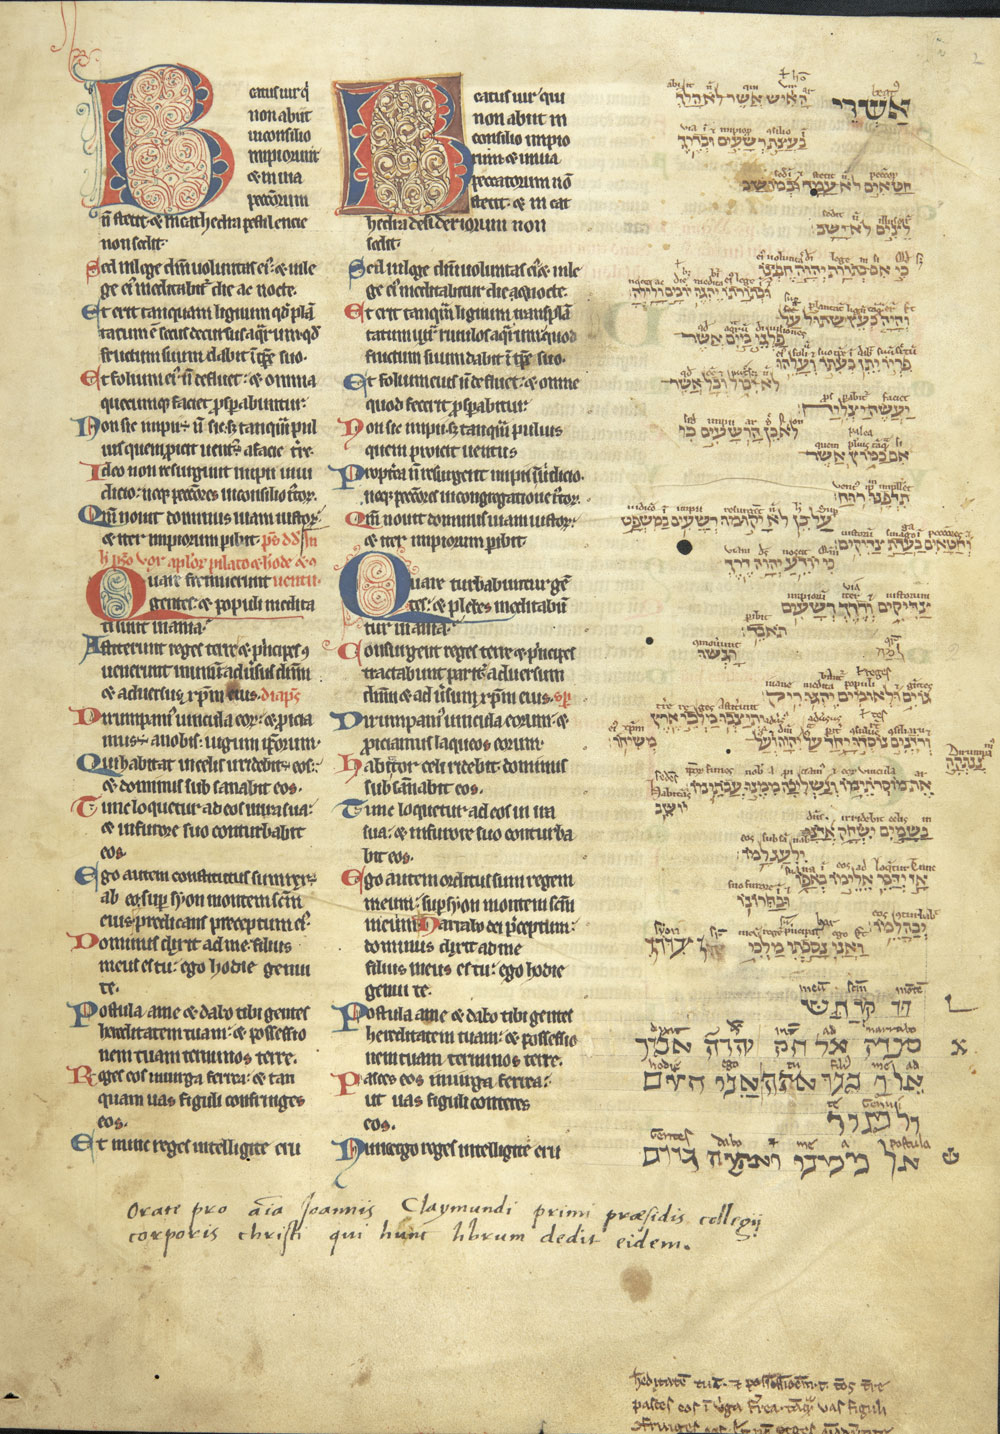 St. Jerome's Latin translation of the Psalms in Hebrew. Corpus Christi College.